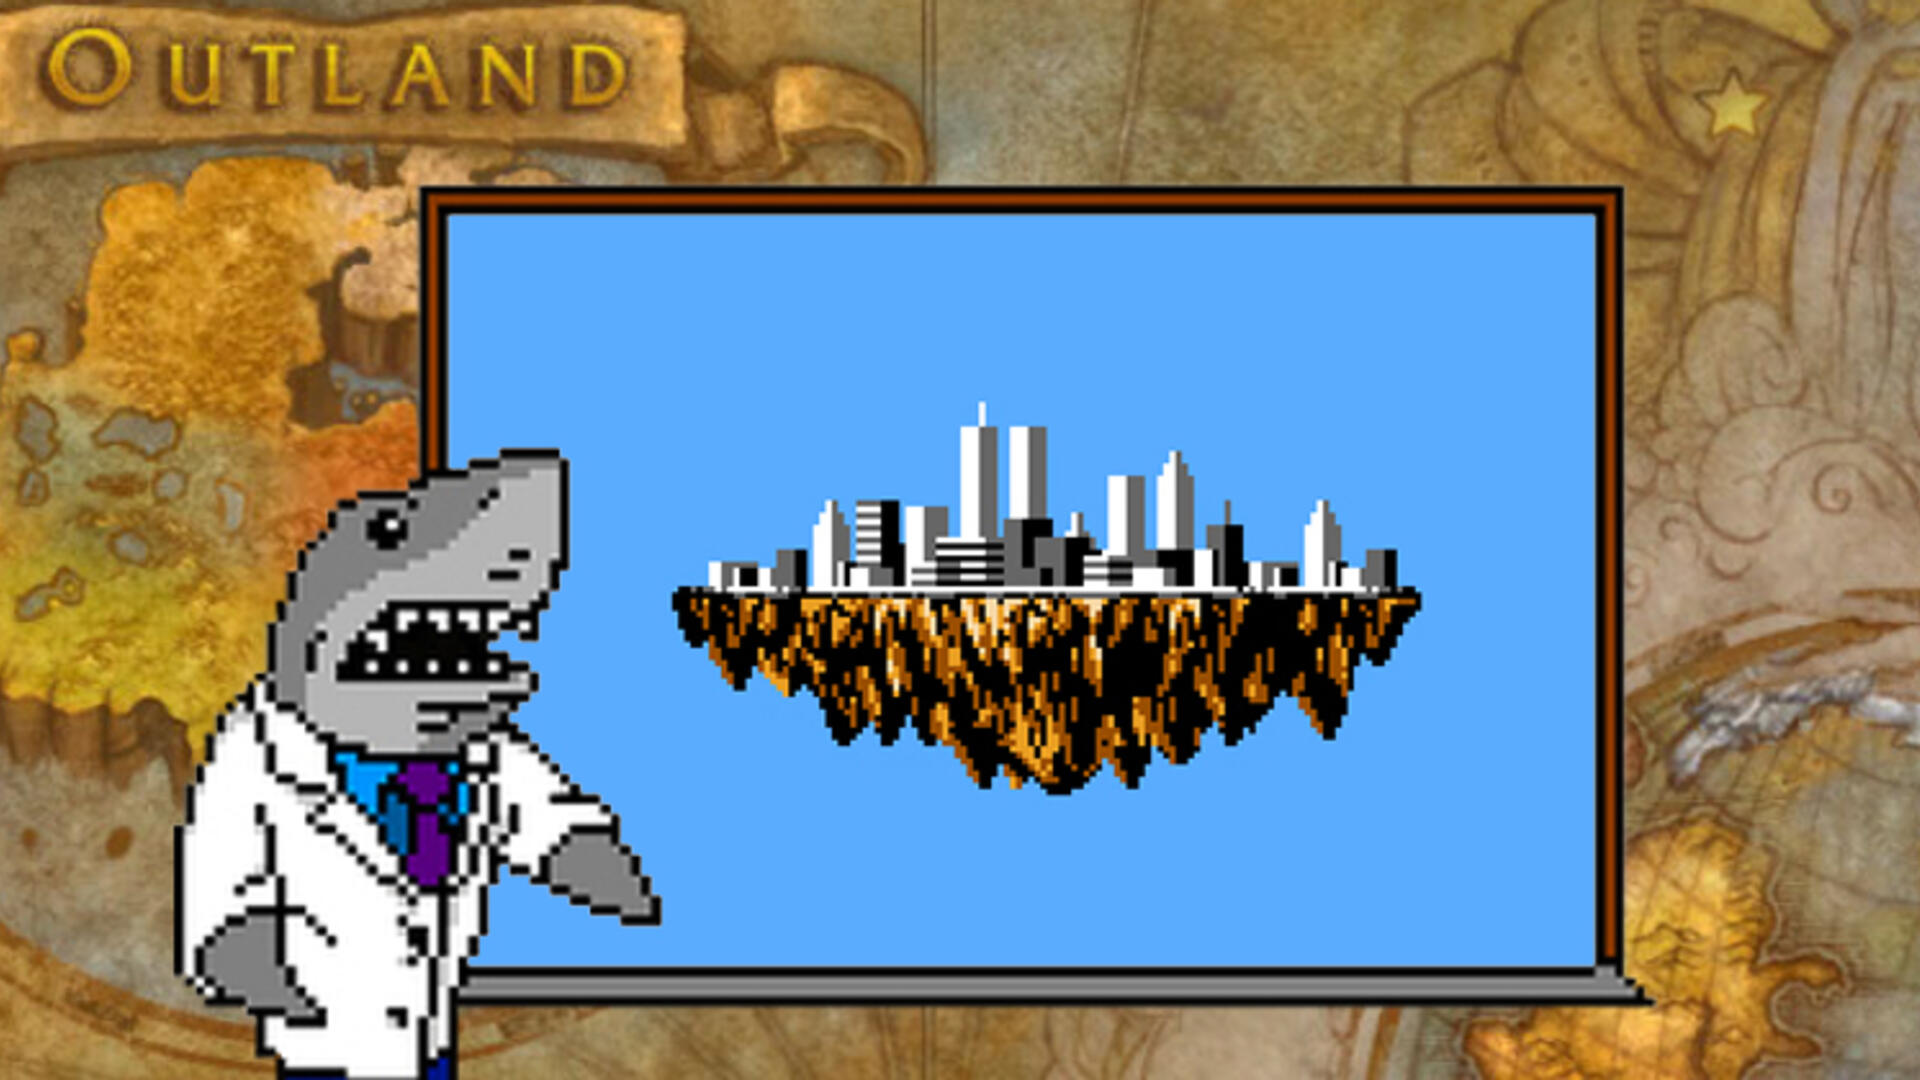 Professor Sharkey's Bad Game Science: Exactly How Big Are Videogame Worlds?